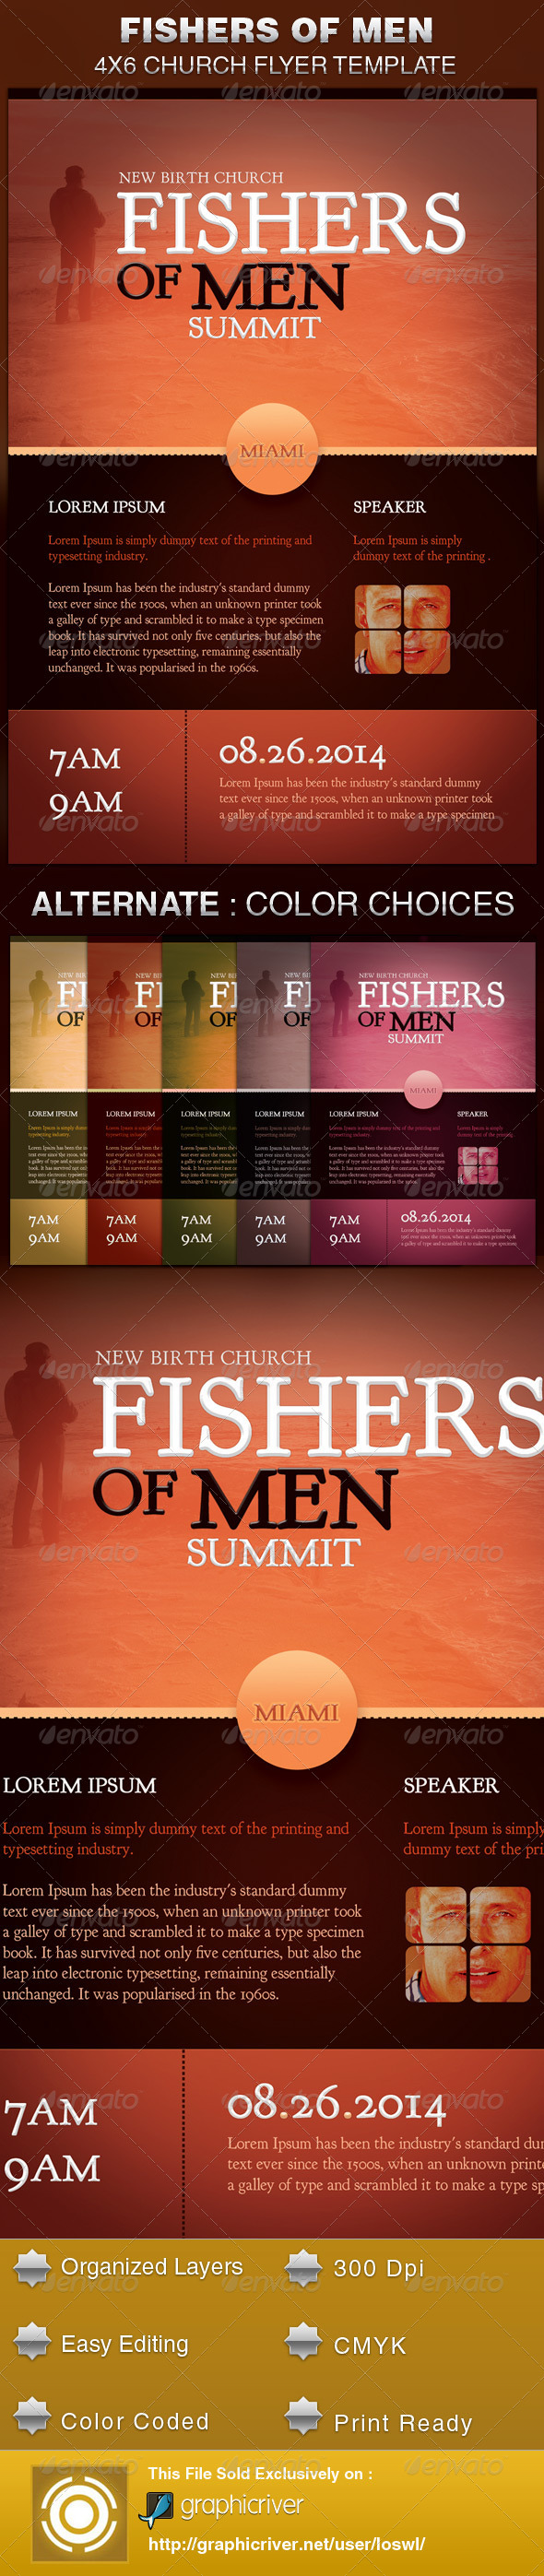 GraphicRiver Fishers of Men Church Flyer Template 5463880